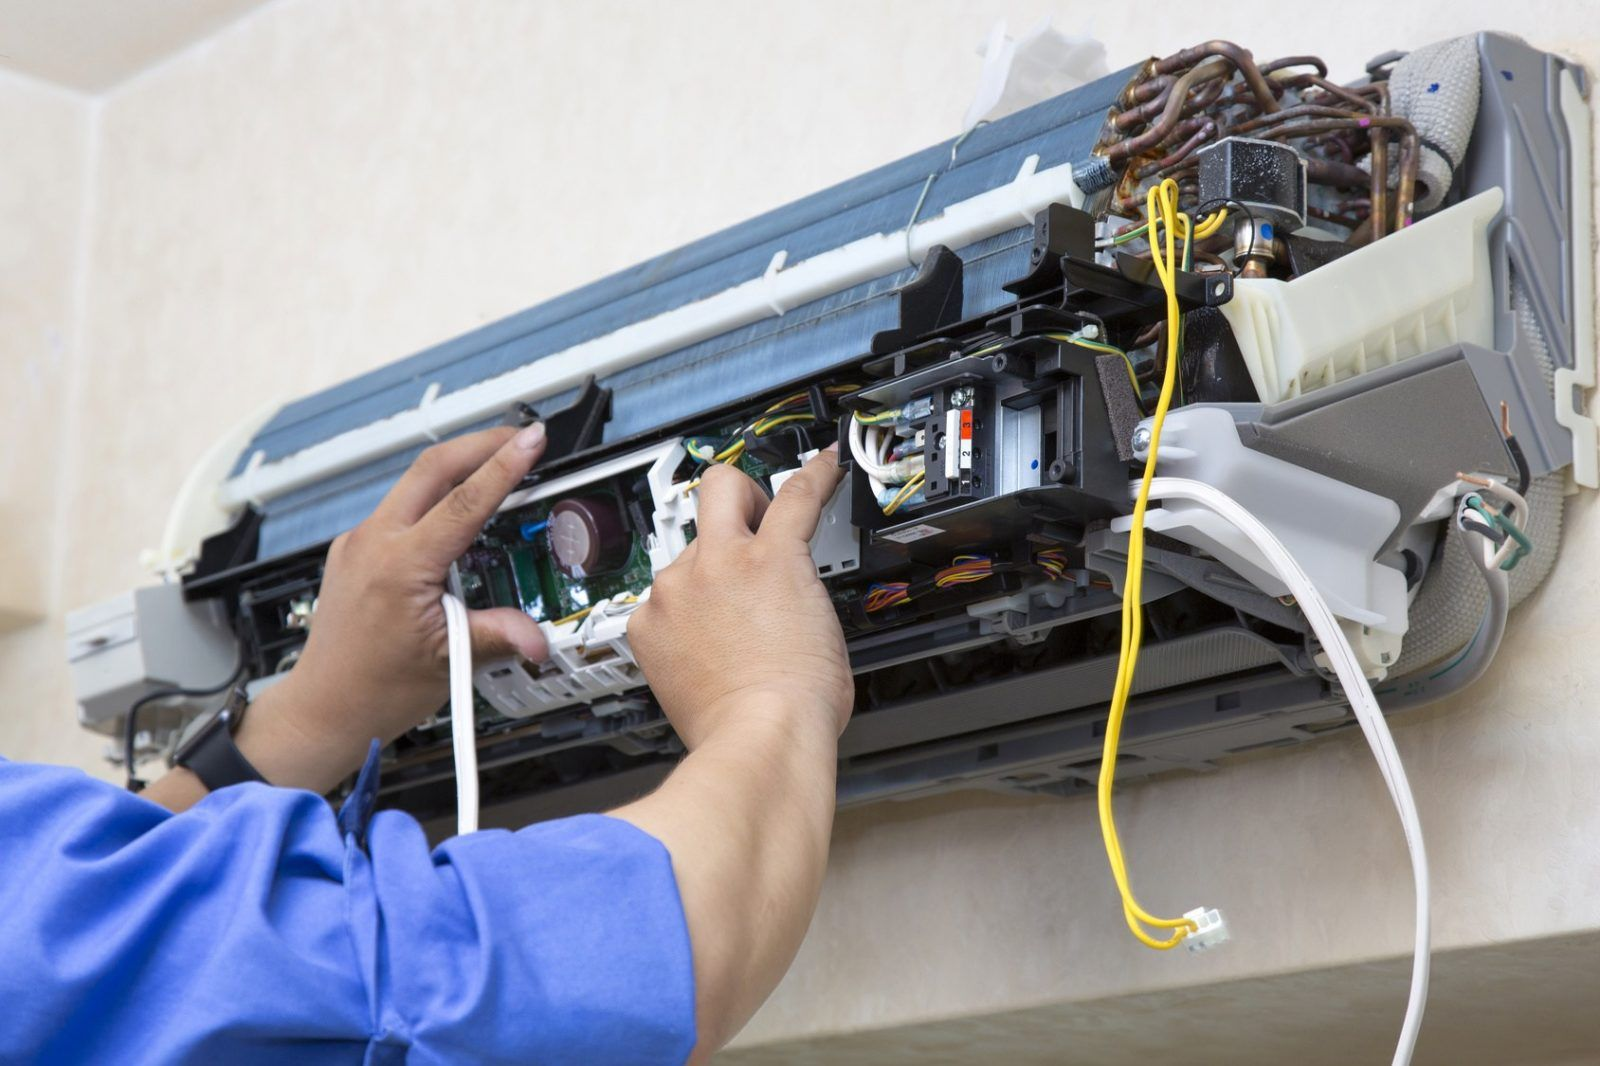 Air conditioners are appliances which need to be handled